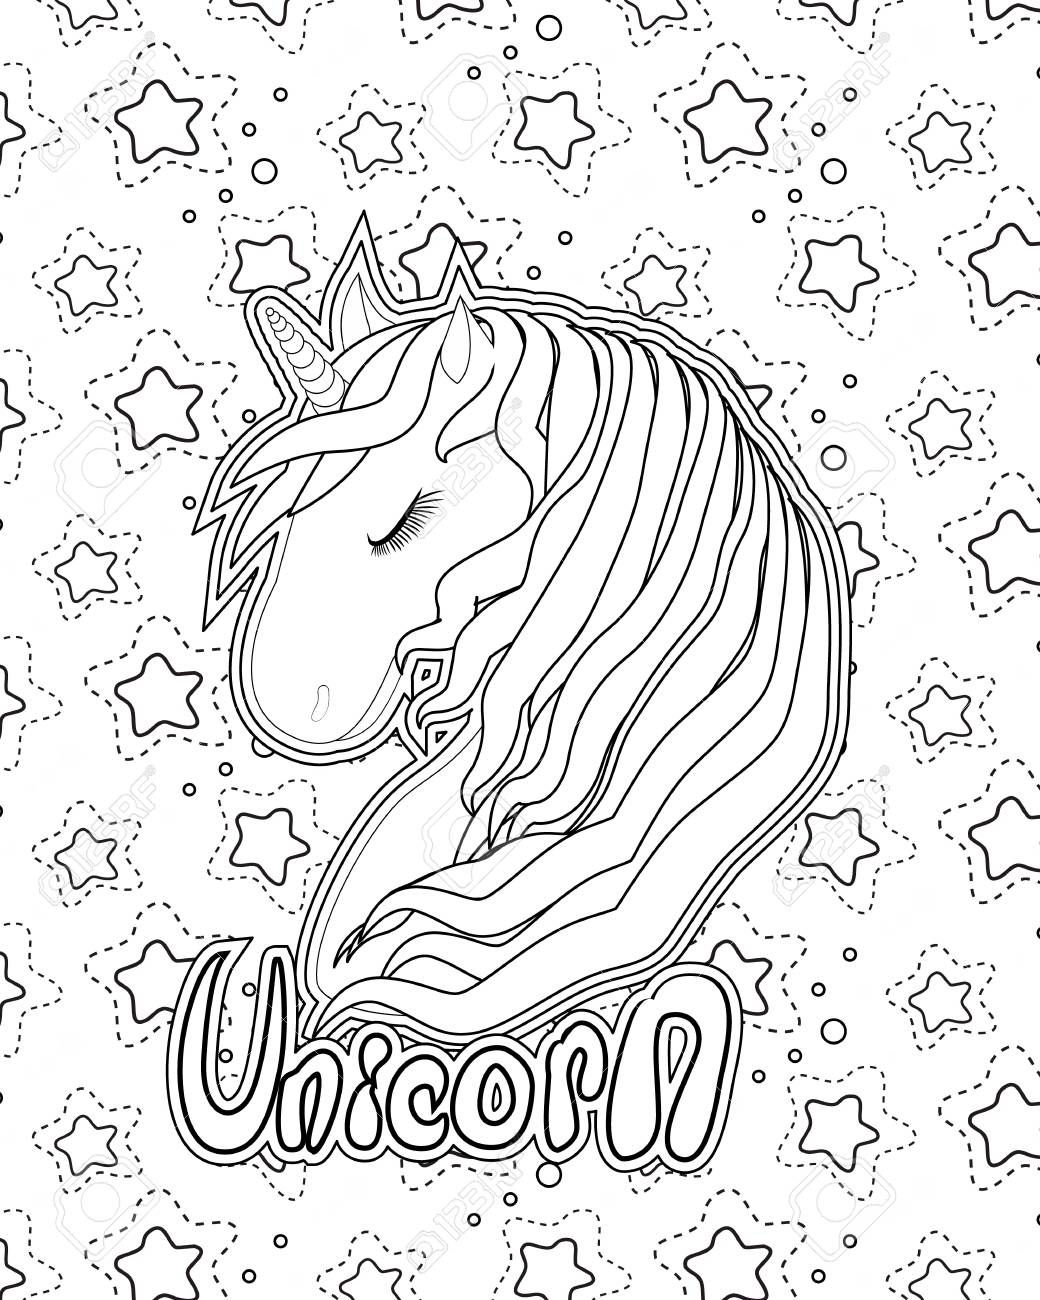 Unicorn Coloring Page Print Black Line On White Royalty Free